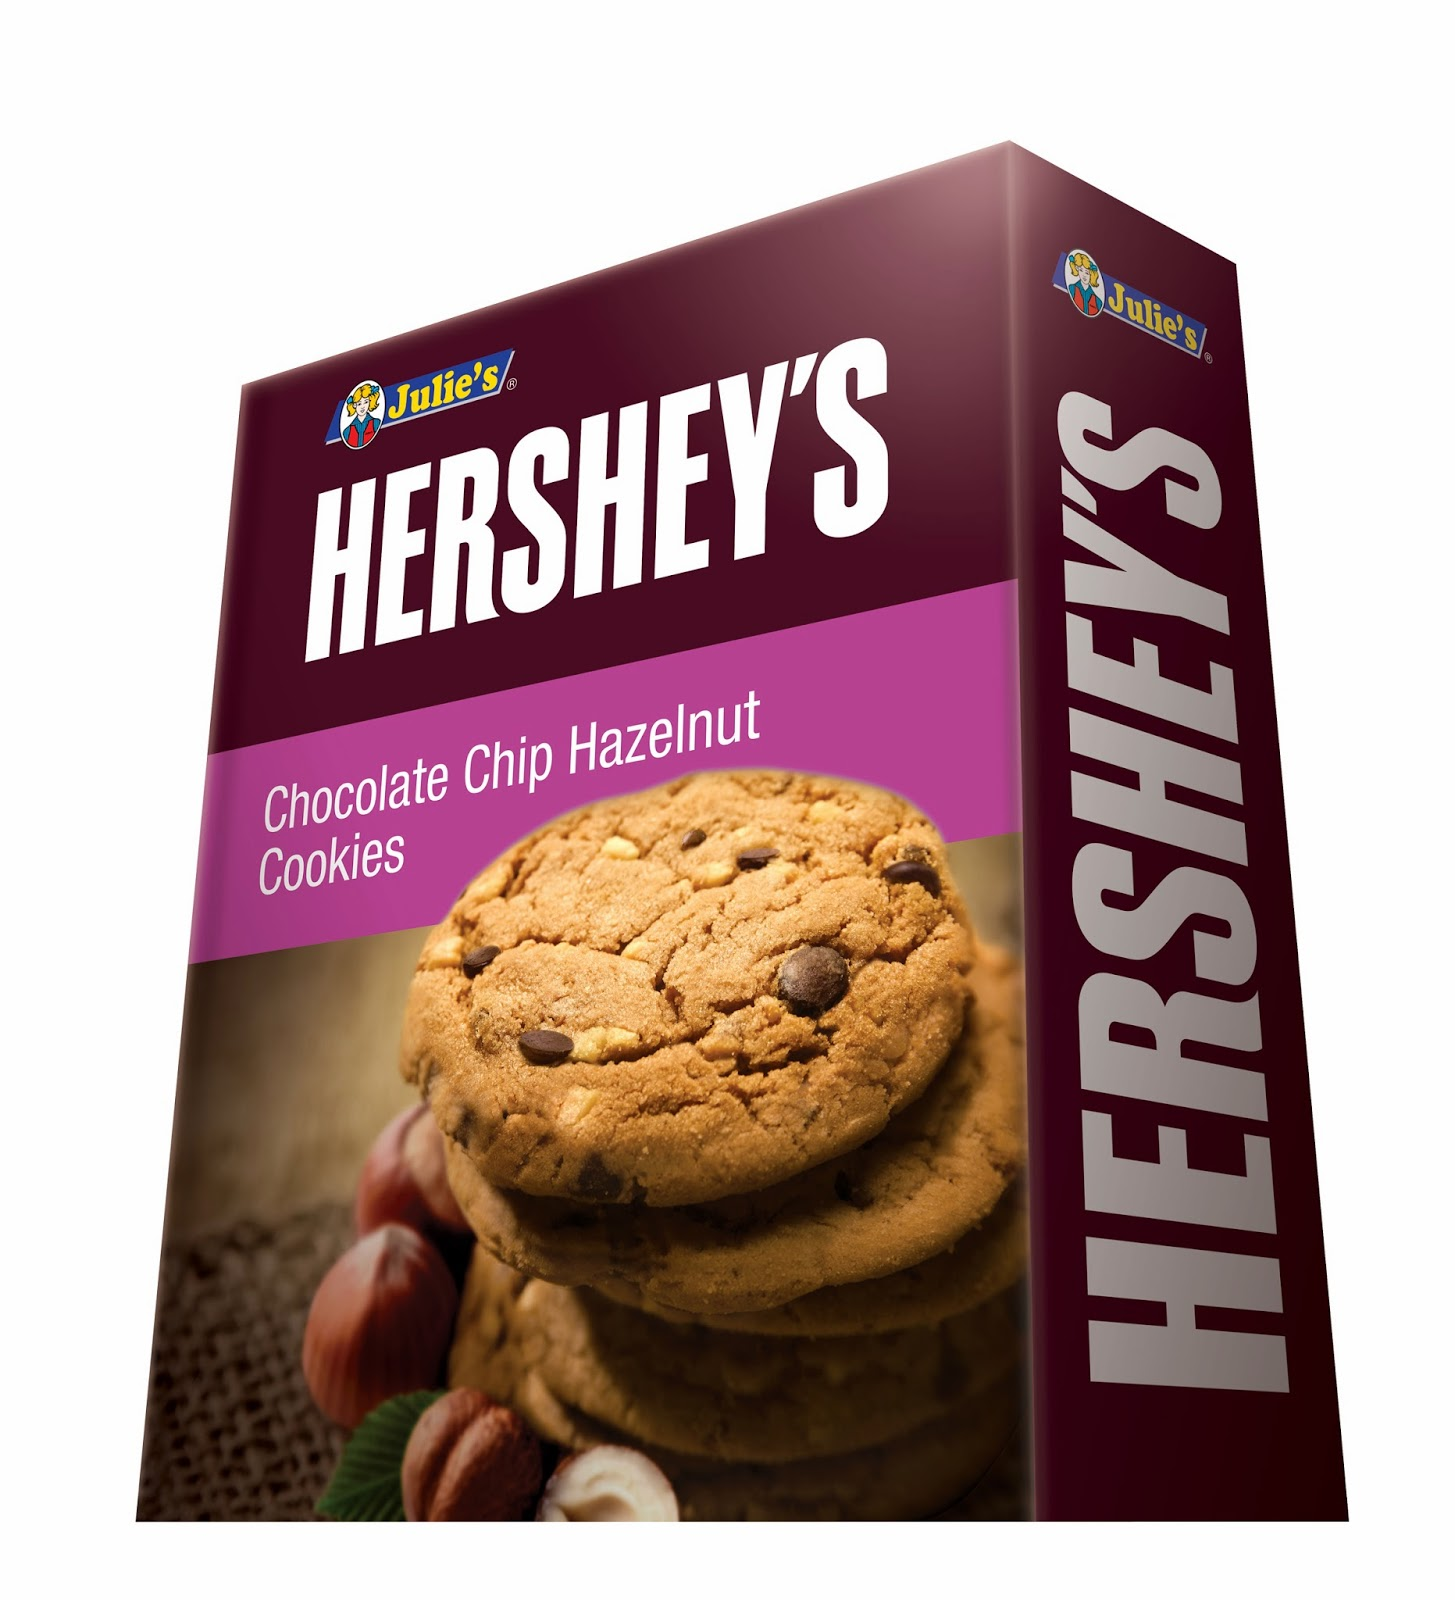 Julie's Hershey's Chocolate Chip Hazelnut Cookies